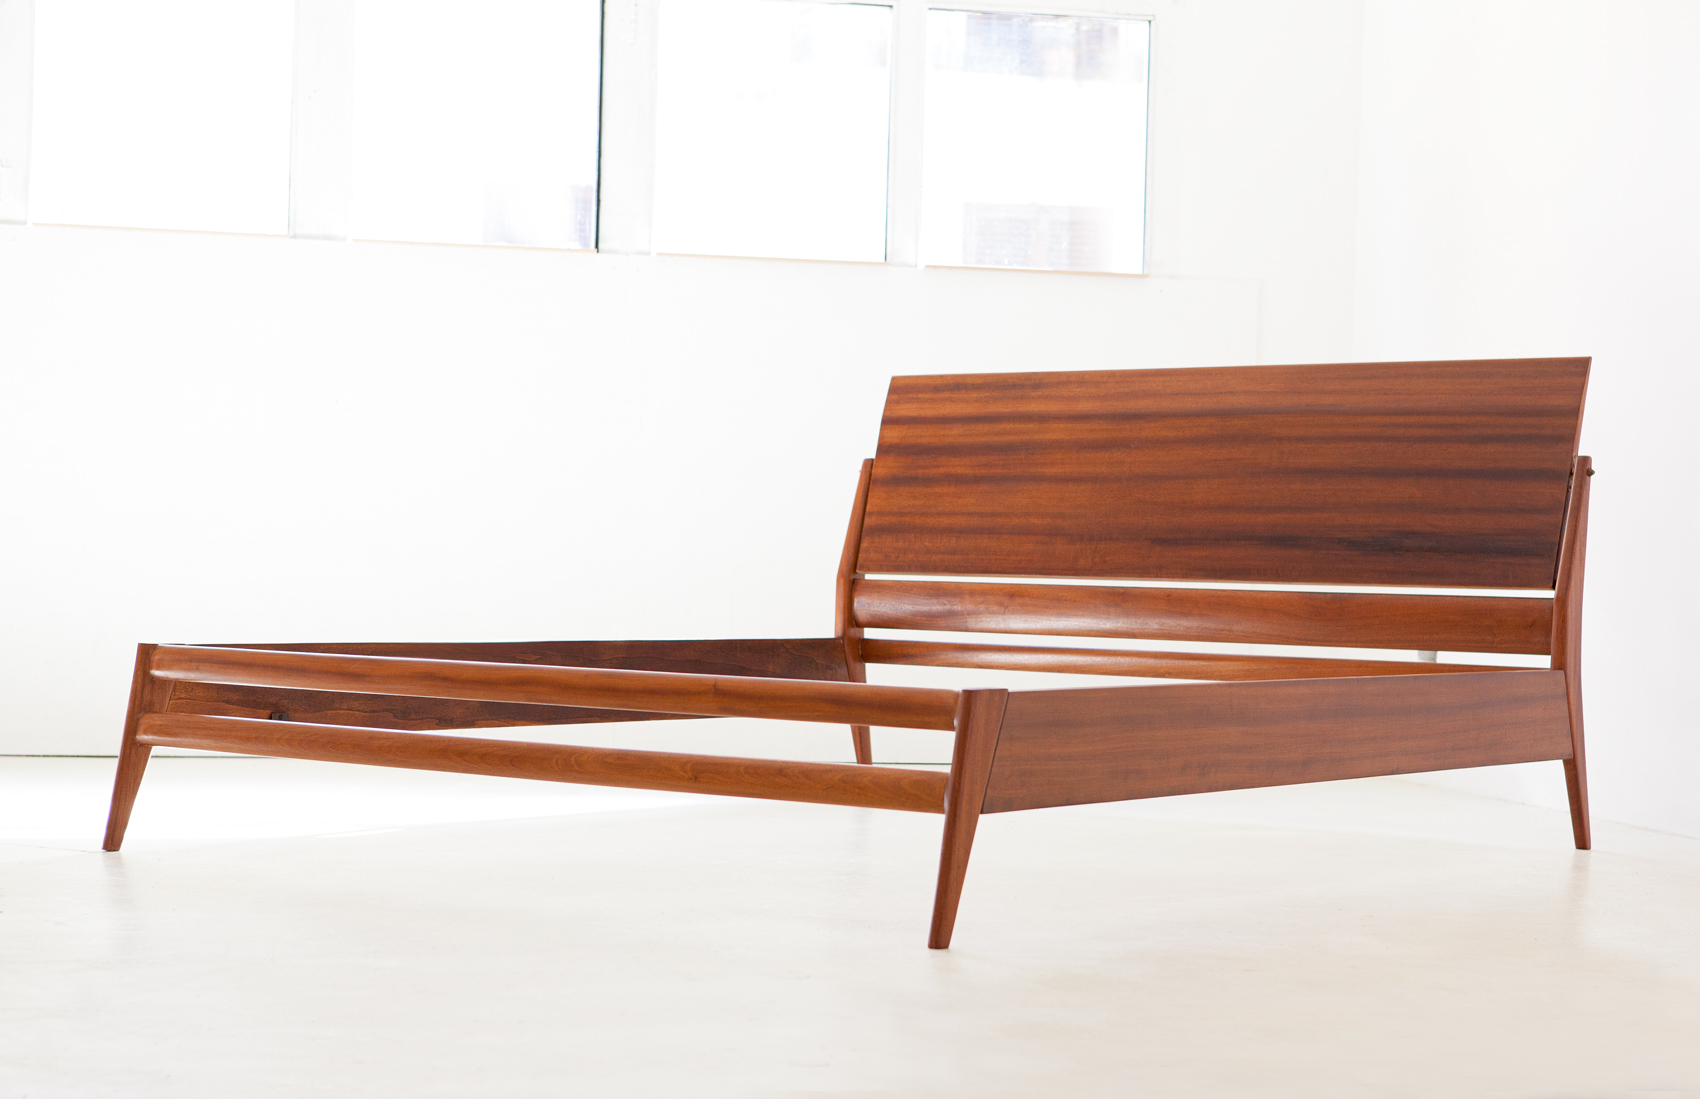 1950s-mahogany-double-bed-by-silvio-cavatorta-3-of101